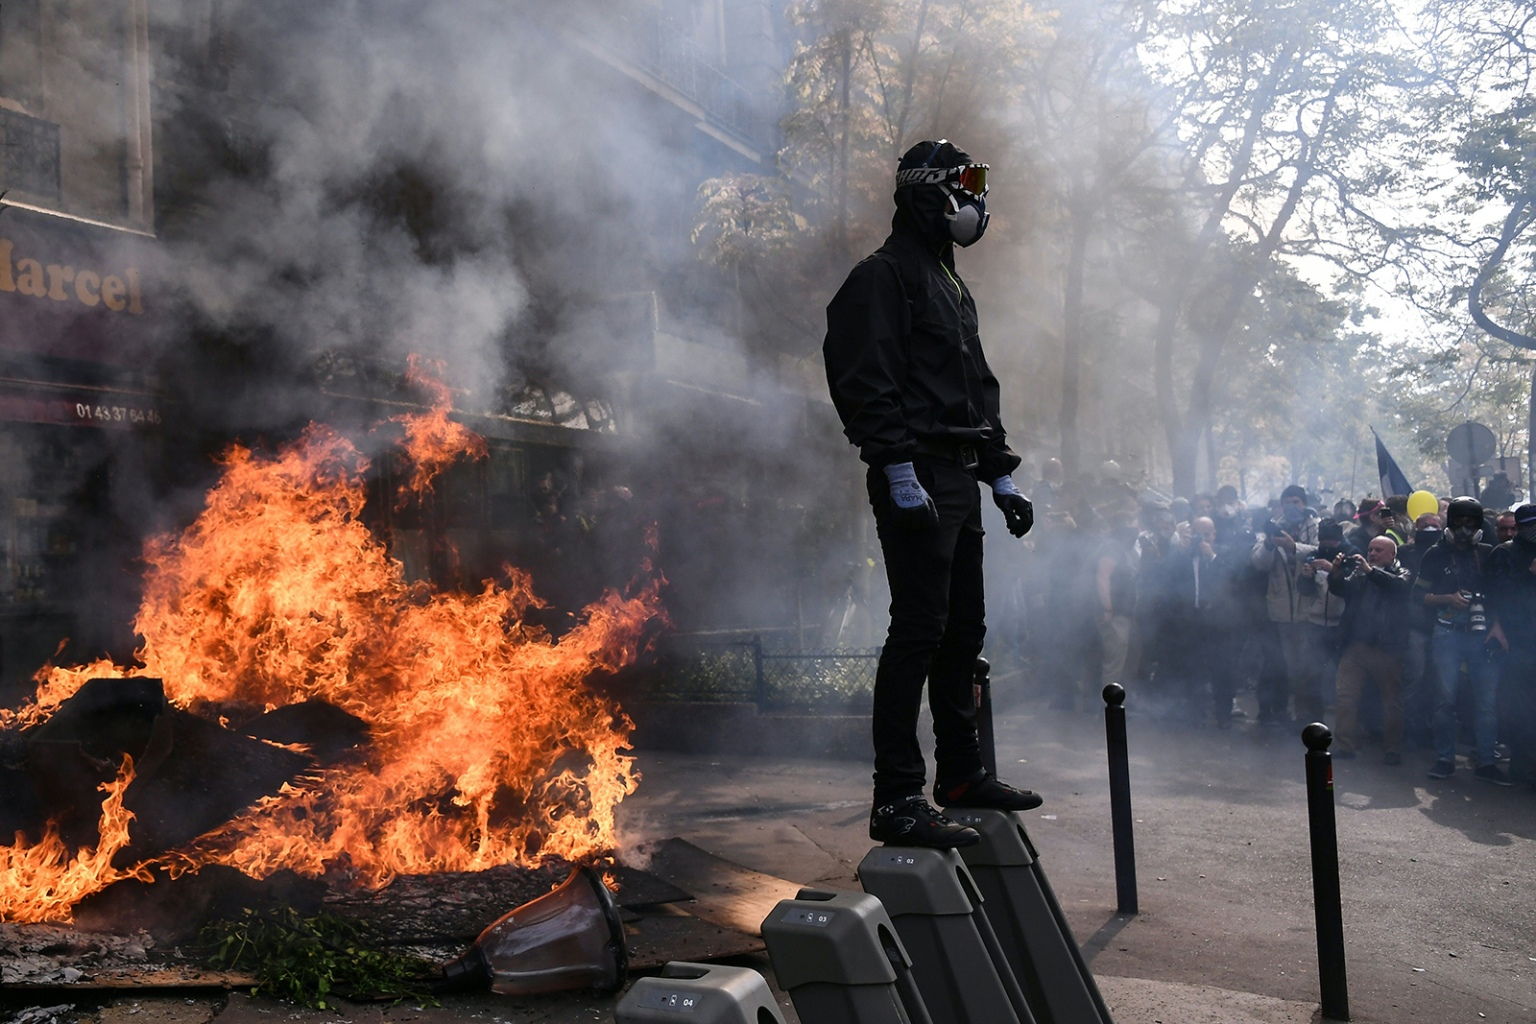 A masked protester stands next to a burning barricade during clashes with police at a May Day demonstration in Paris on May 1. ANNE-CHRISTINE POUJOULAT/AFP/Getty Images